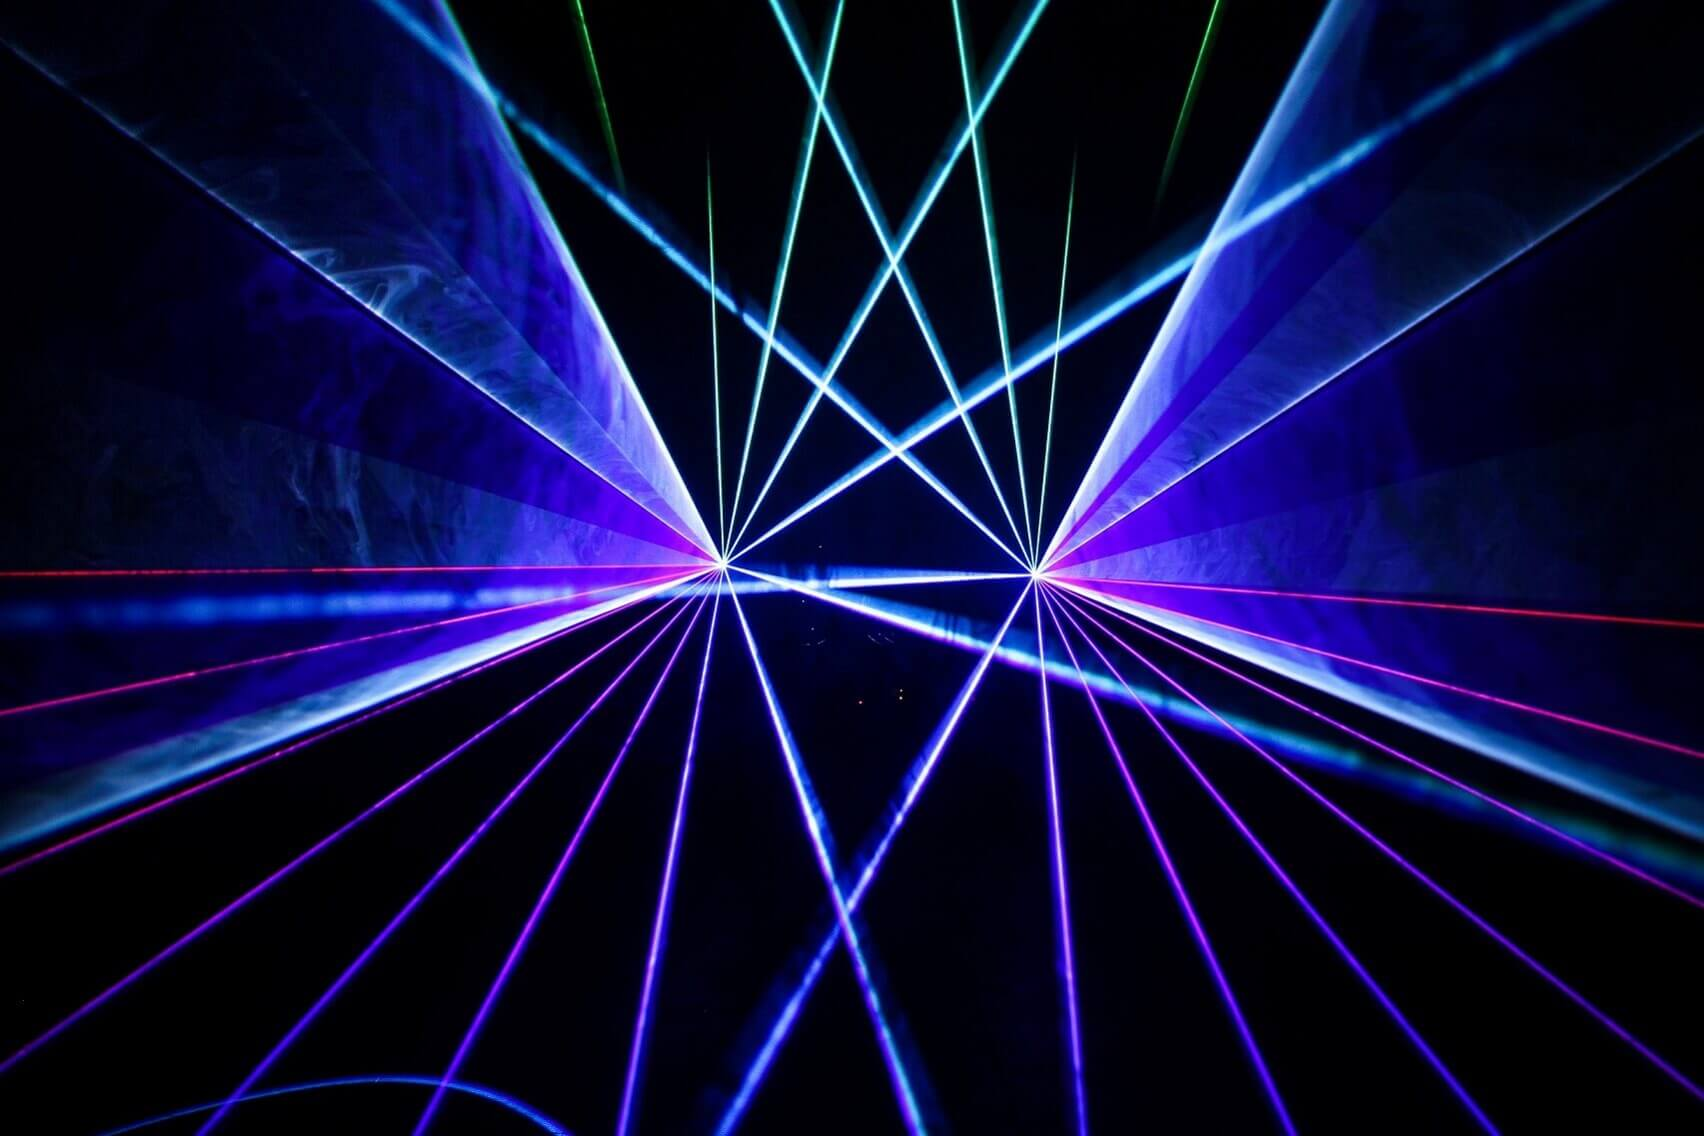 Laser Show with Atmospheric effects